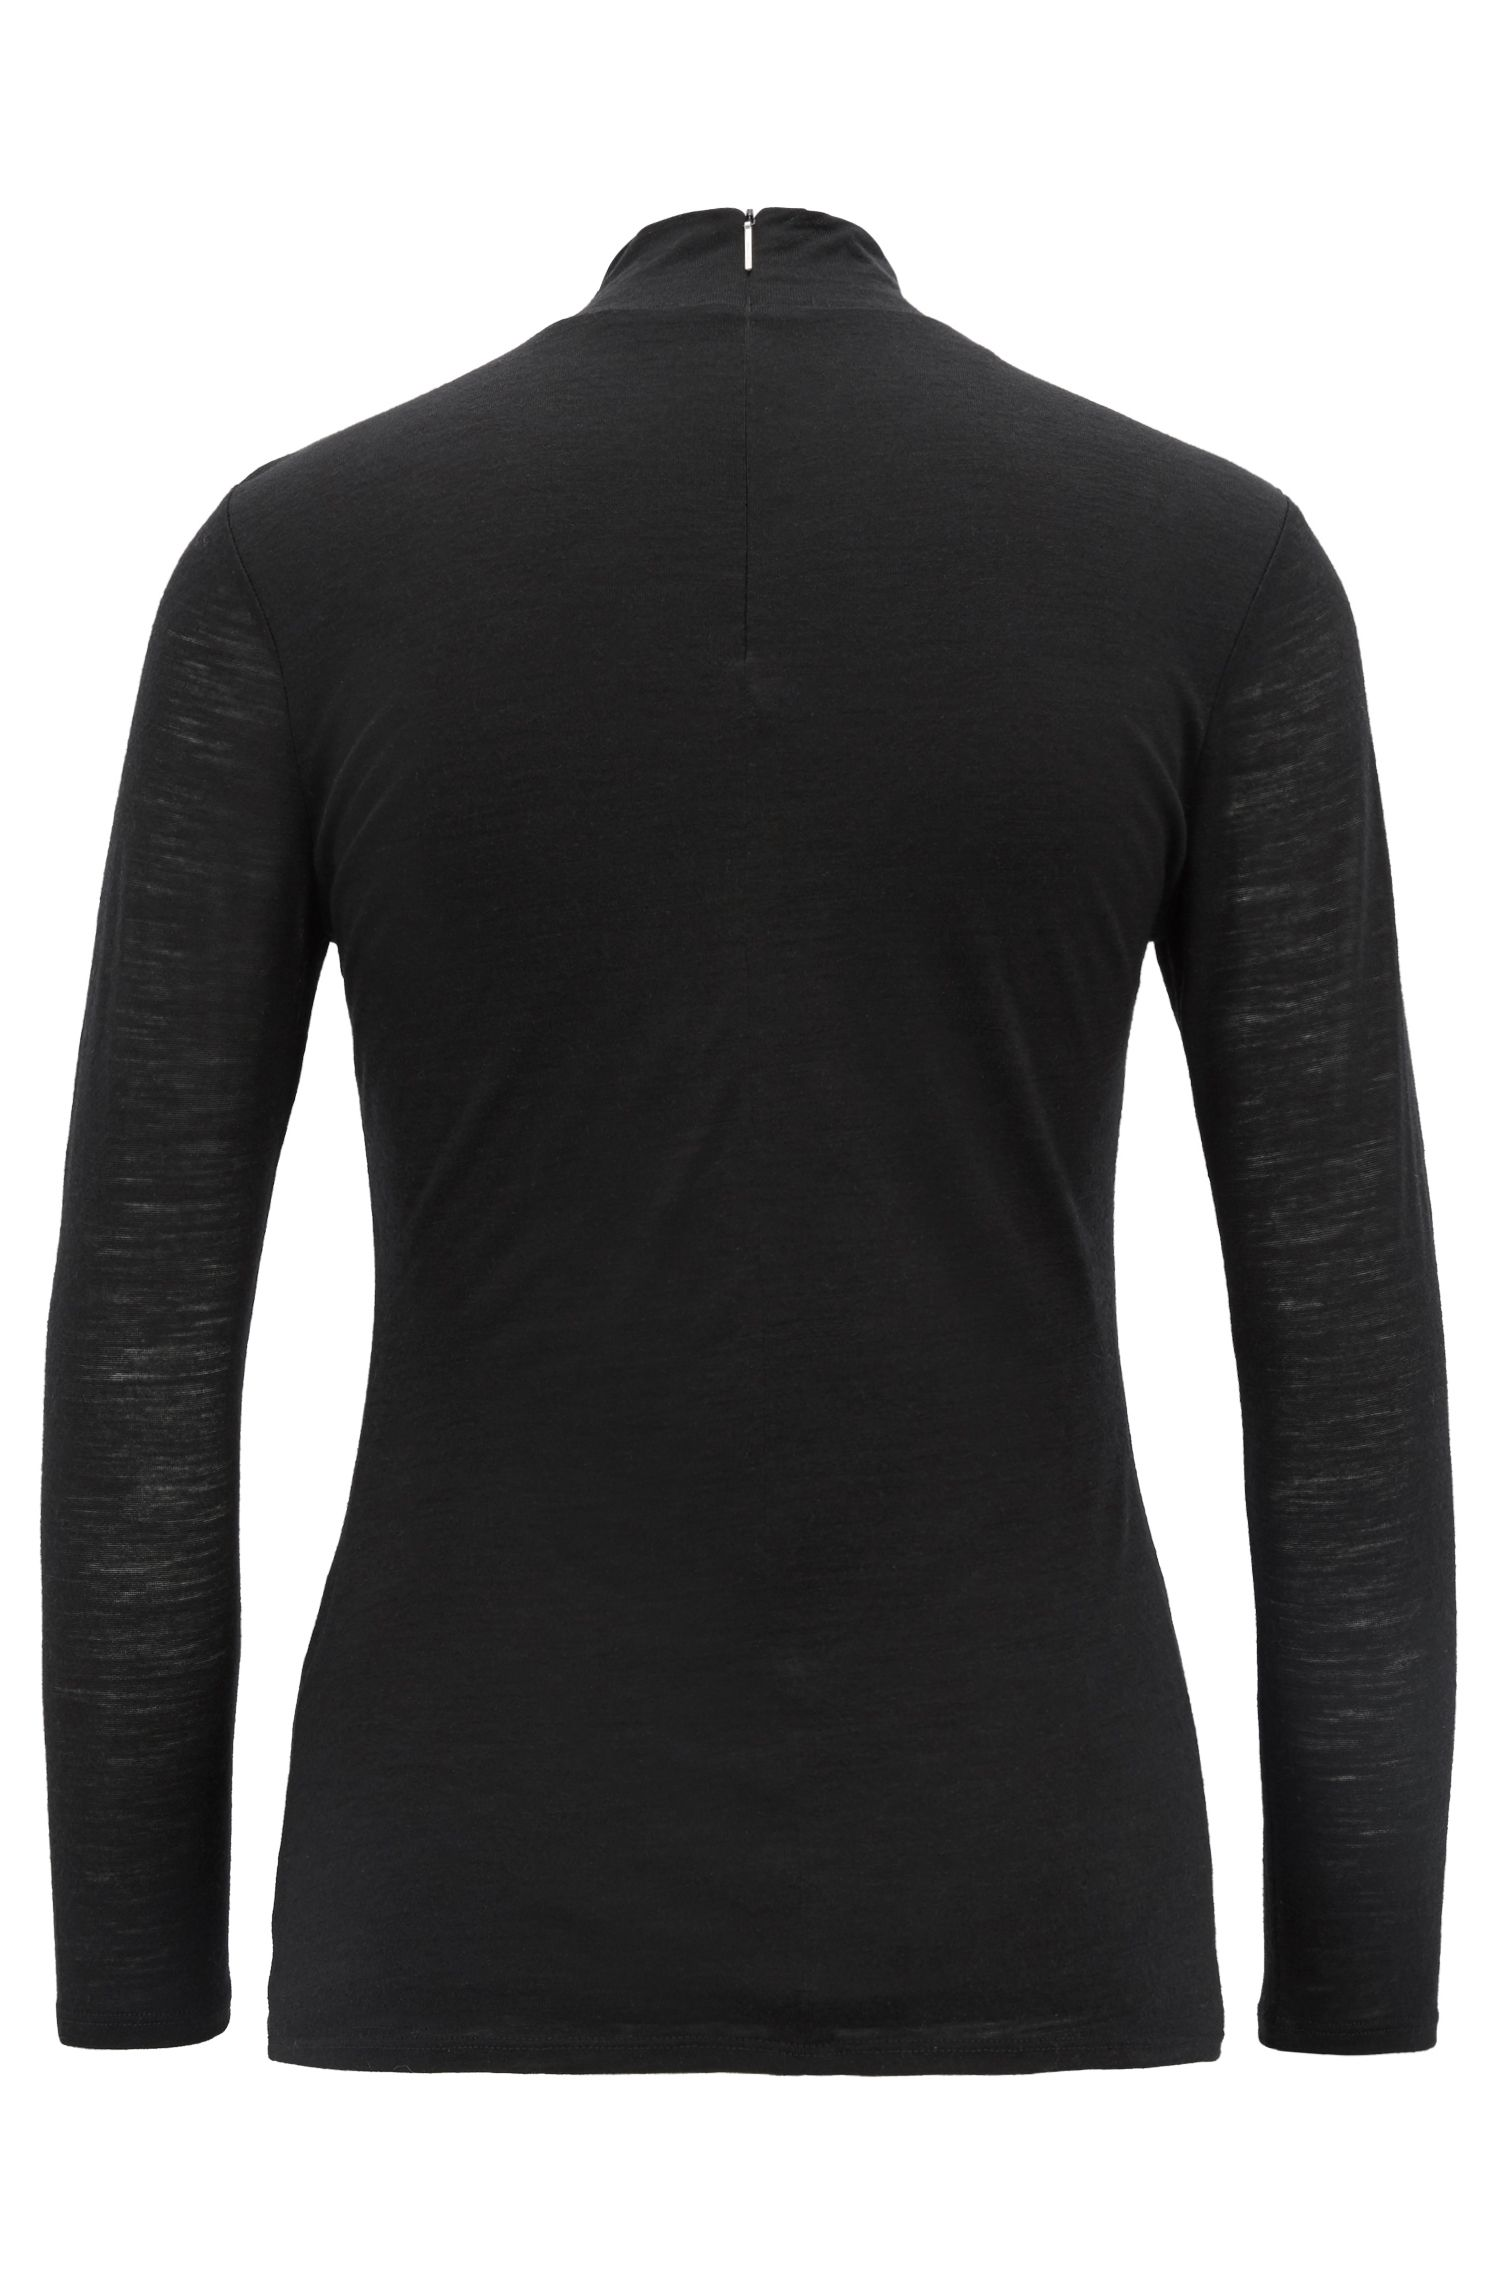 Turtleneck top in lightweight fabric with lined body, Black